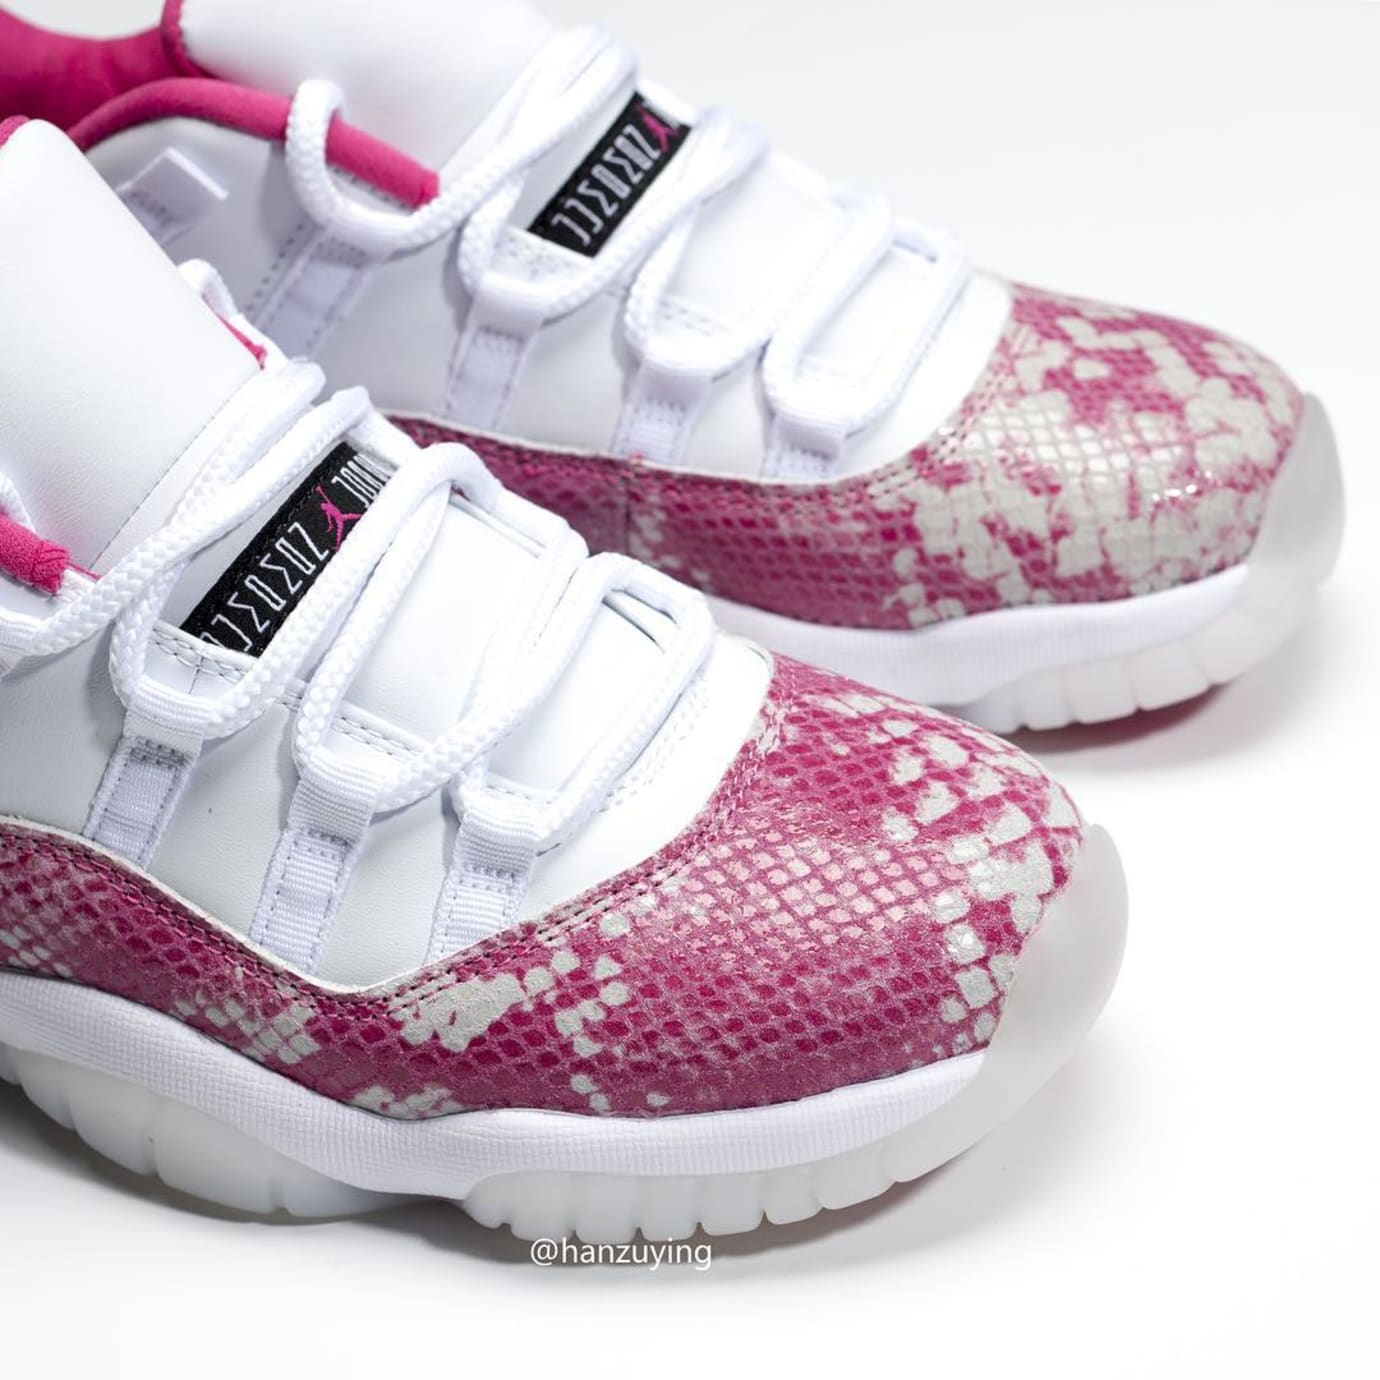 Image via Hanzuying · Air Jordan 11 Retro Low  Pink Snakeskin  AH7860-106  Toe 617657c48